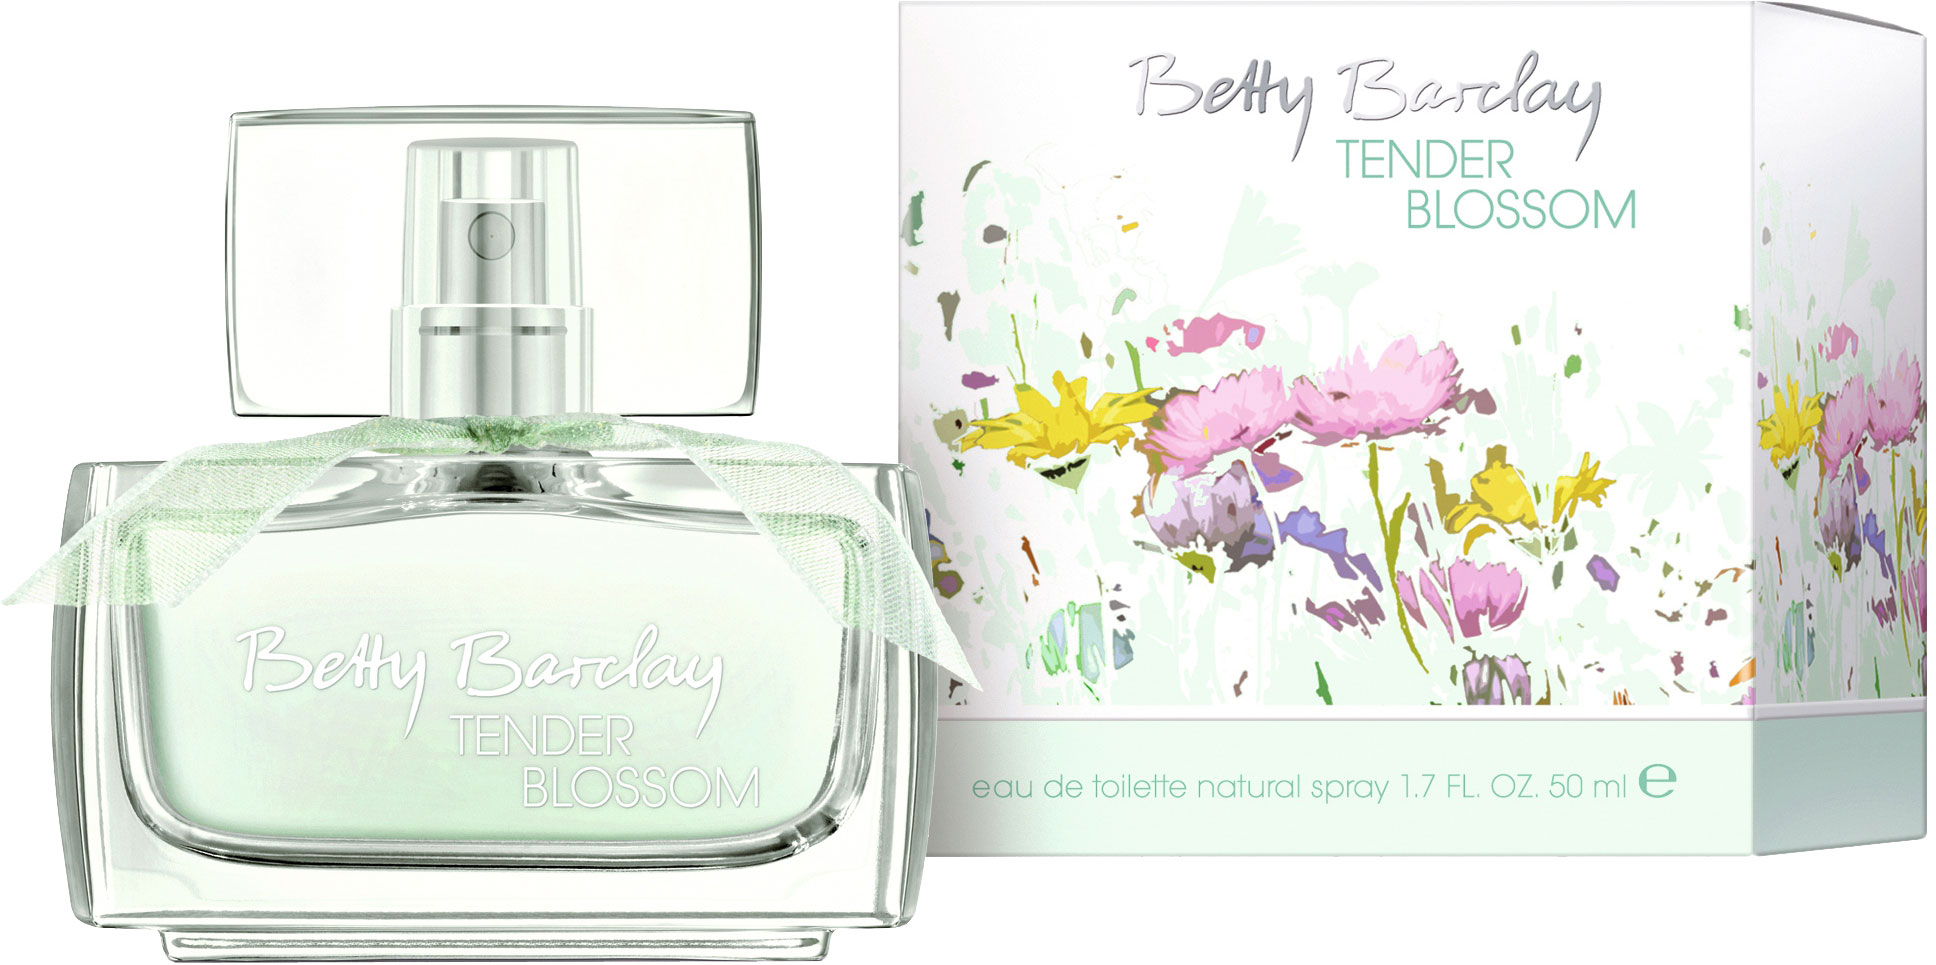 Spring has sprung spray technology marketing for Betty barclay